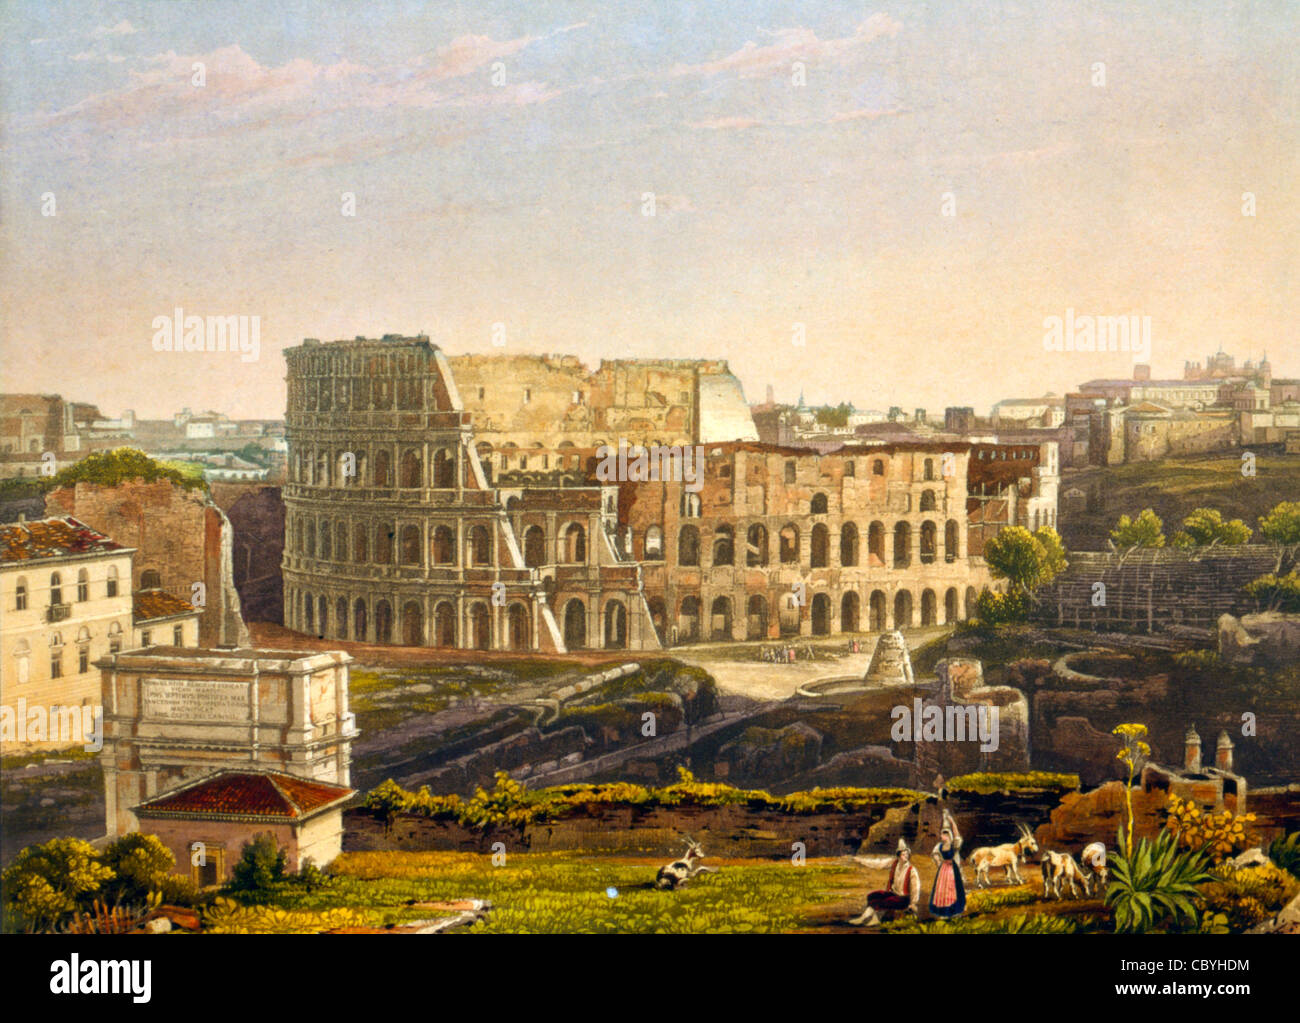 View  of the Colosseum, Rome, Italy. Le Colisee a Rome! Circa 1842 - Stock Image